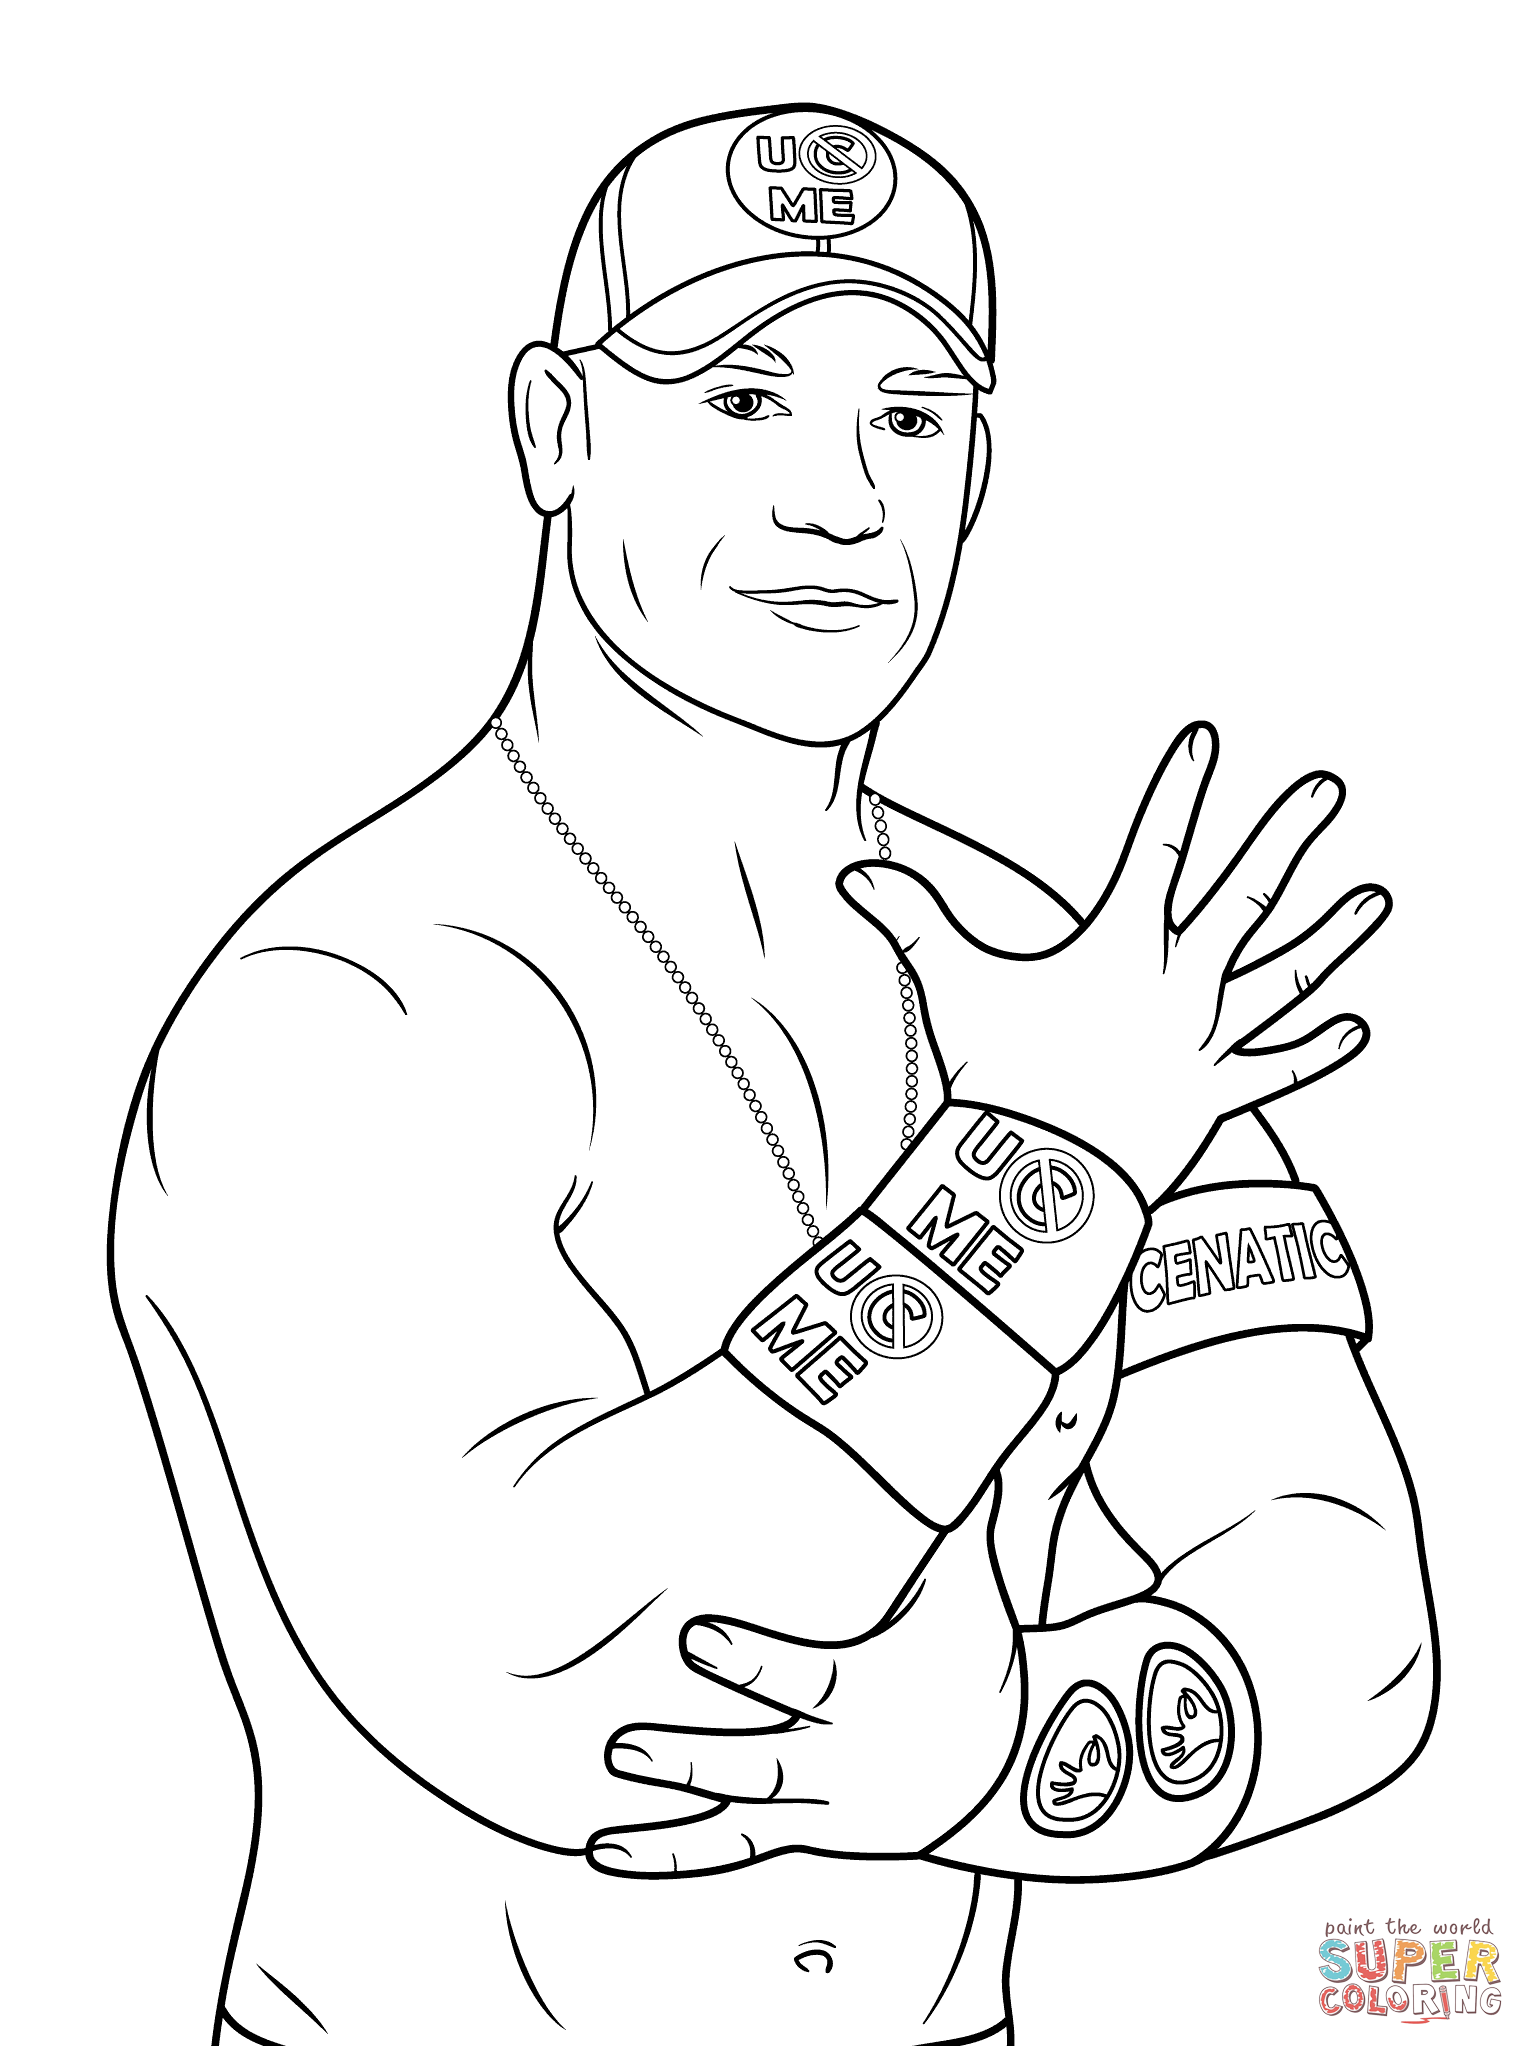 Click the john cena coloring pages